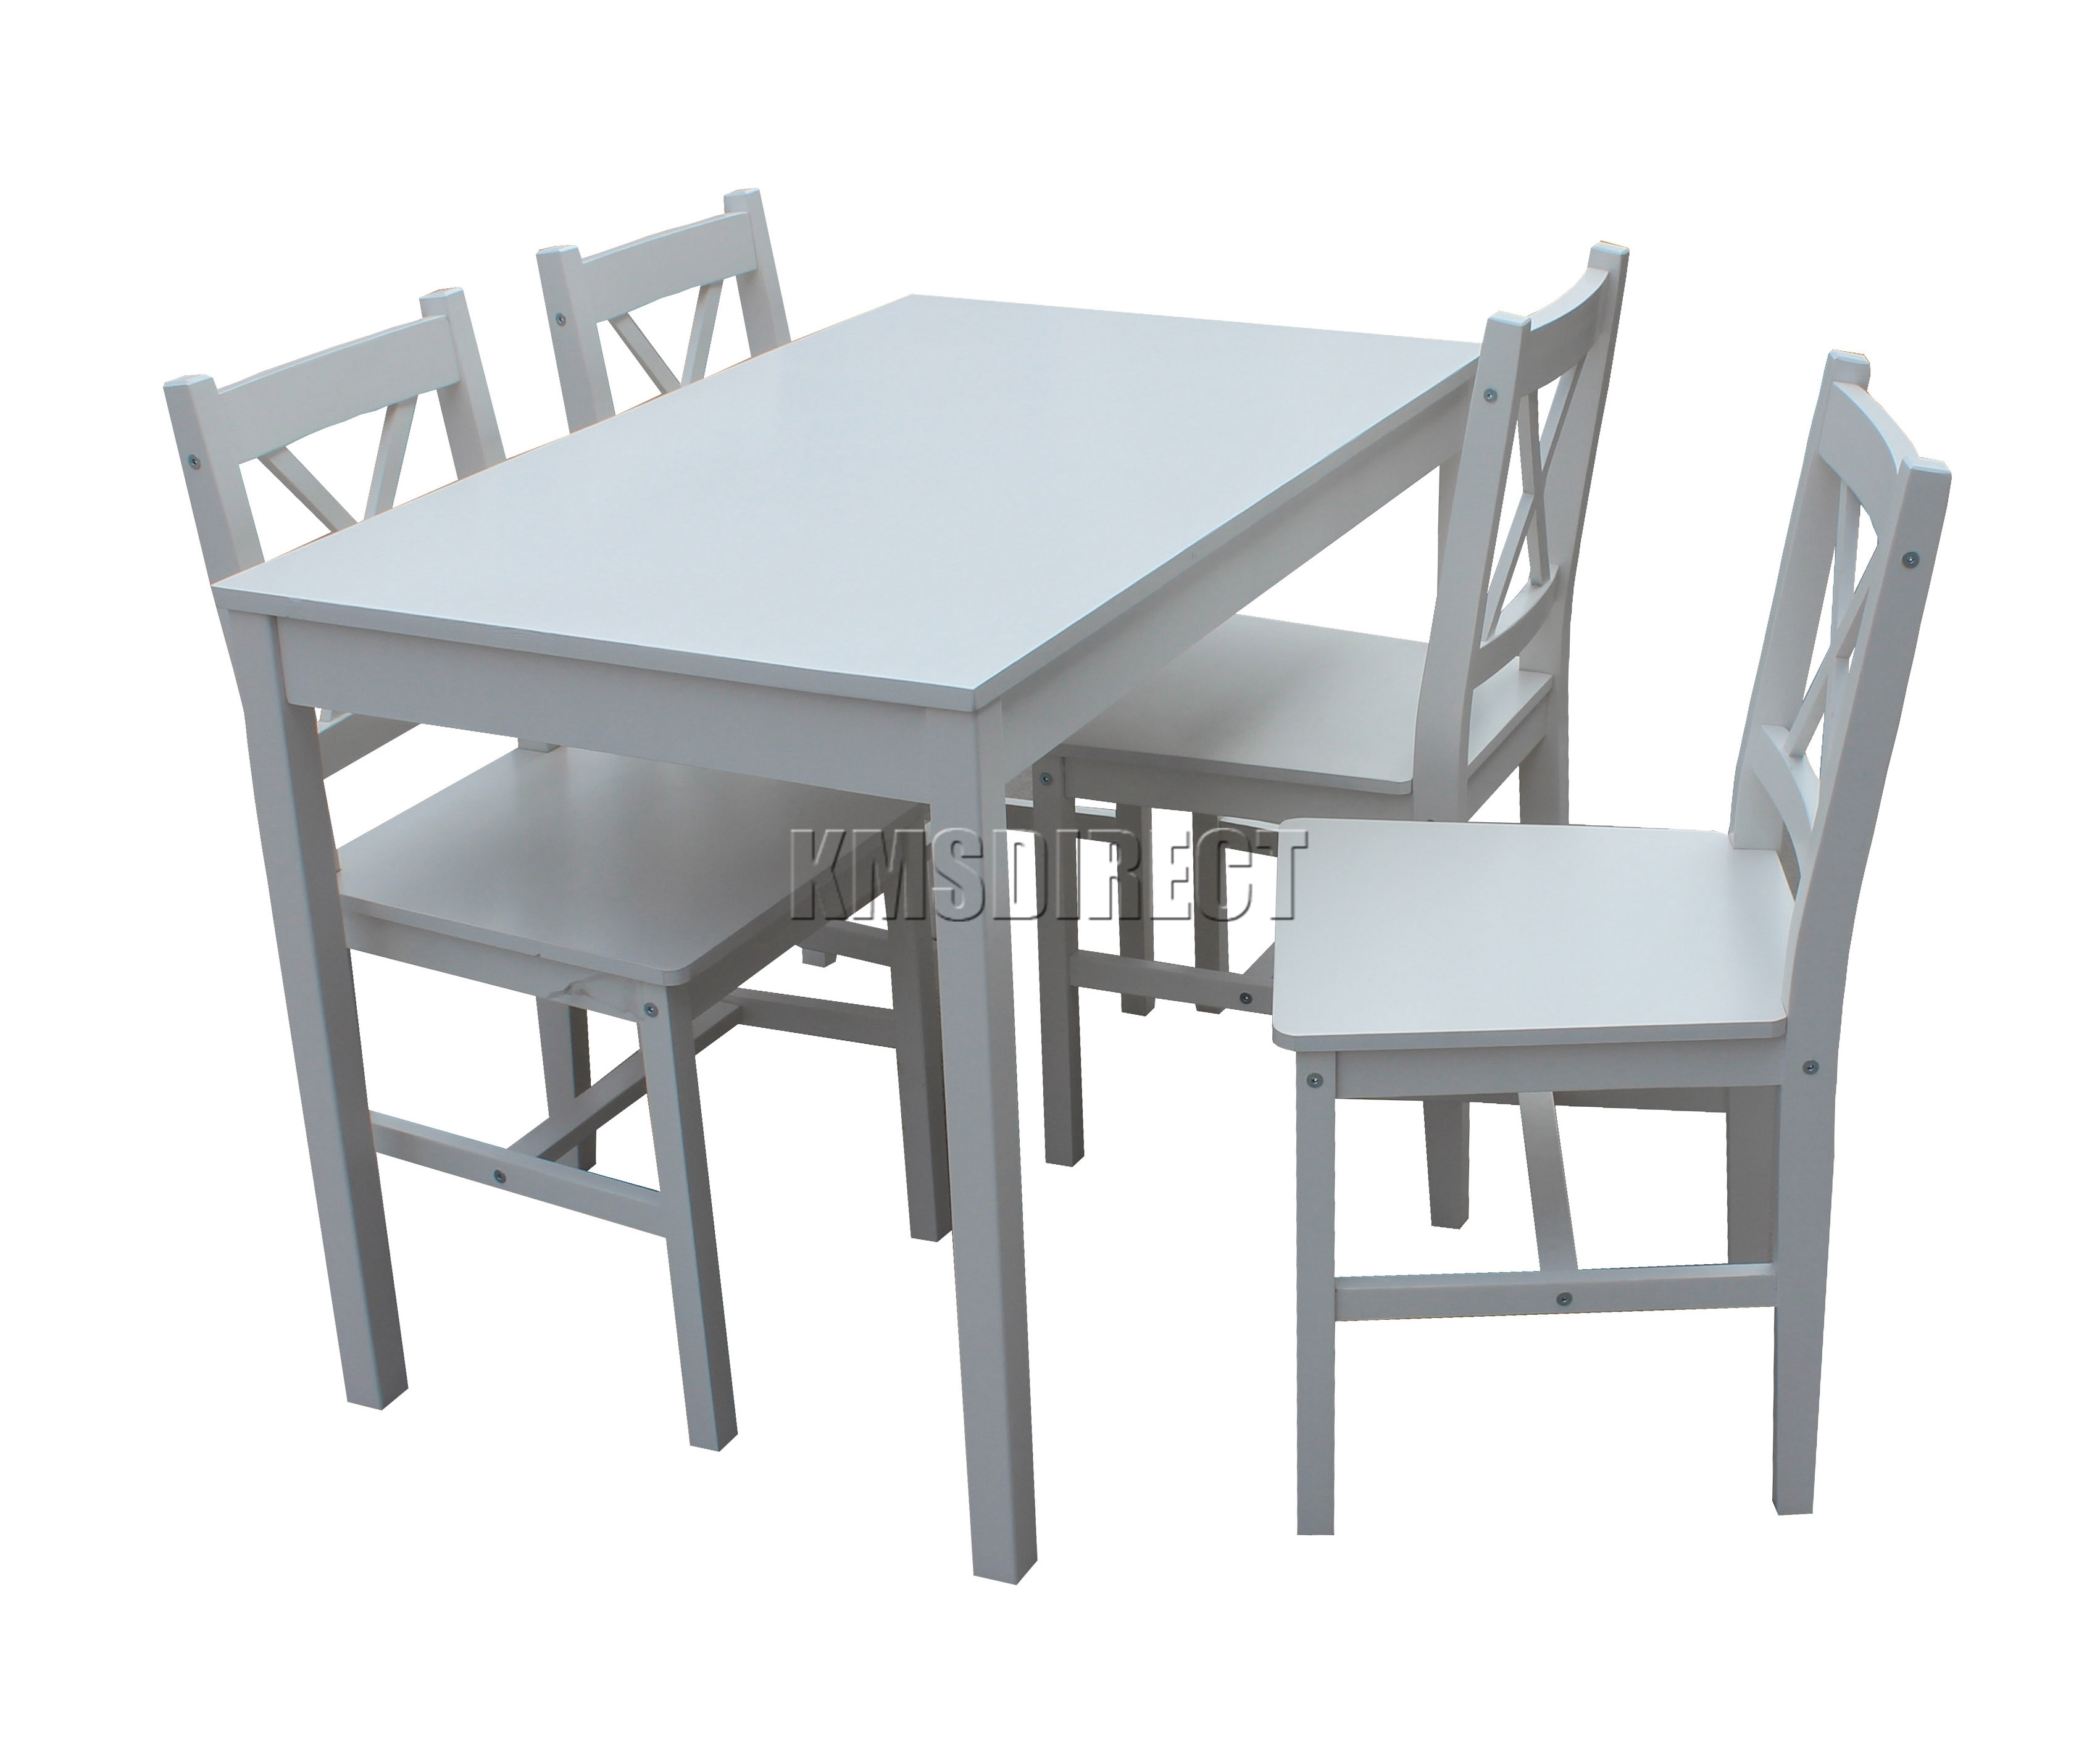 FoxHunter Quality Solid Wooden Dining Table and 4 Chairs  : DINING TABLE 4 CHAIR WOOD DS03 VAR KMSWM11 from www.ebay.co.uk size 3402 x 2835 jpeg 1096kB